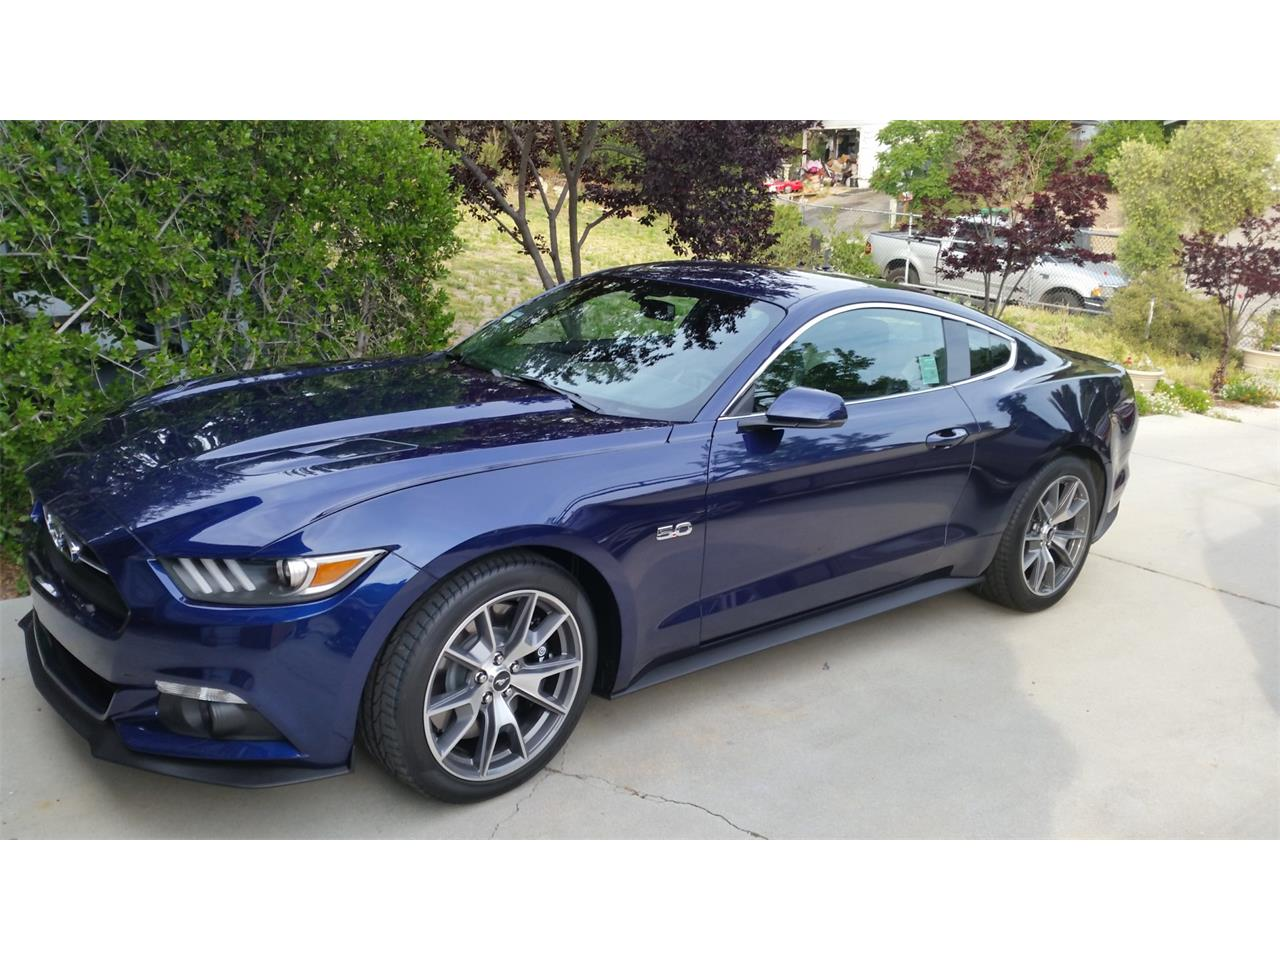 2015 Ford Mustang Gt For Sale >> 2015 Ford Mustang Gt For Sale Classiccars Com Cc 1082688